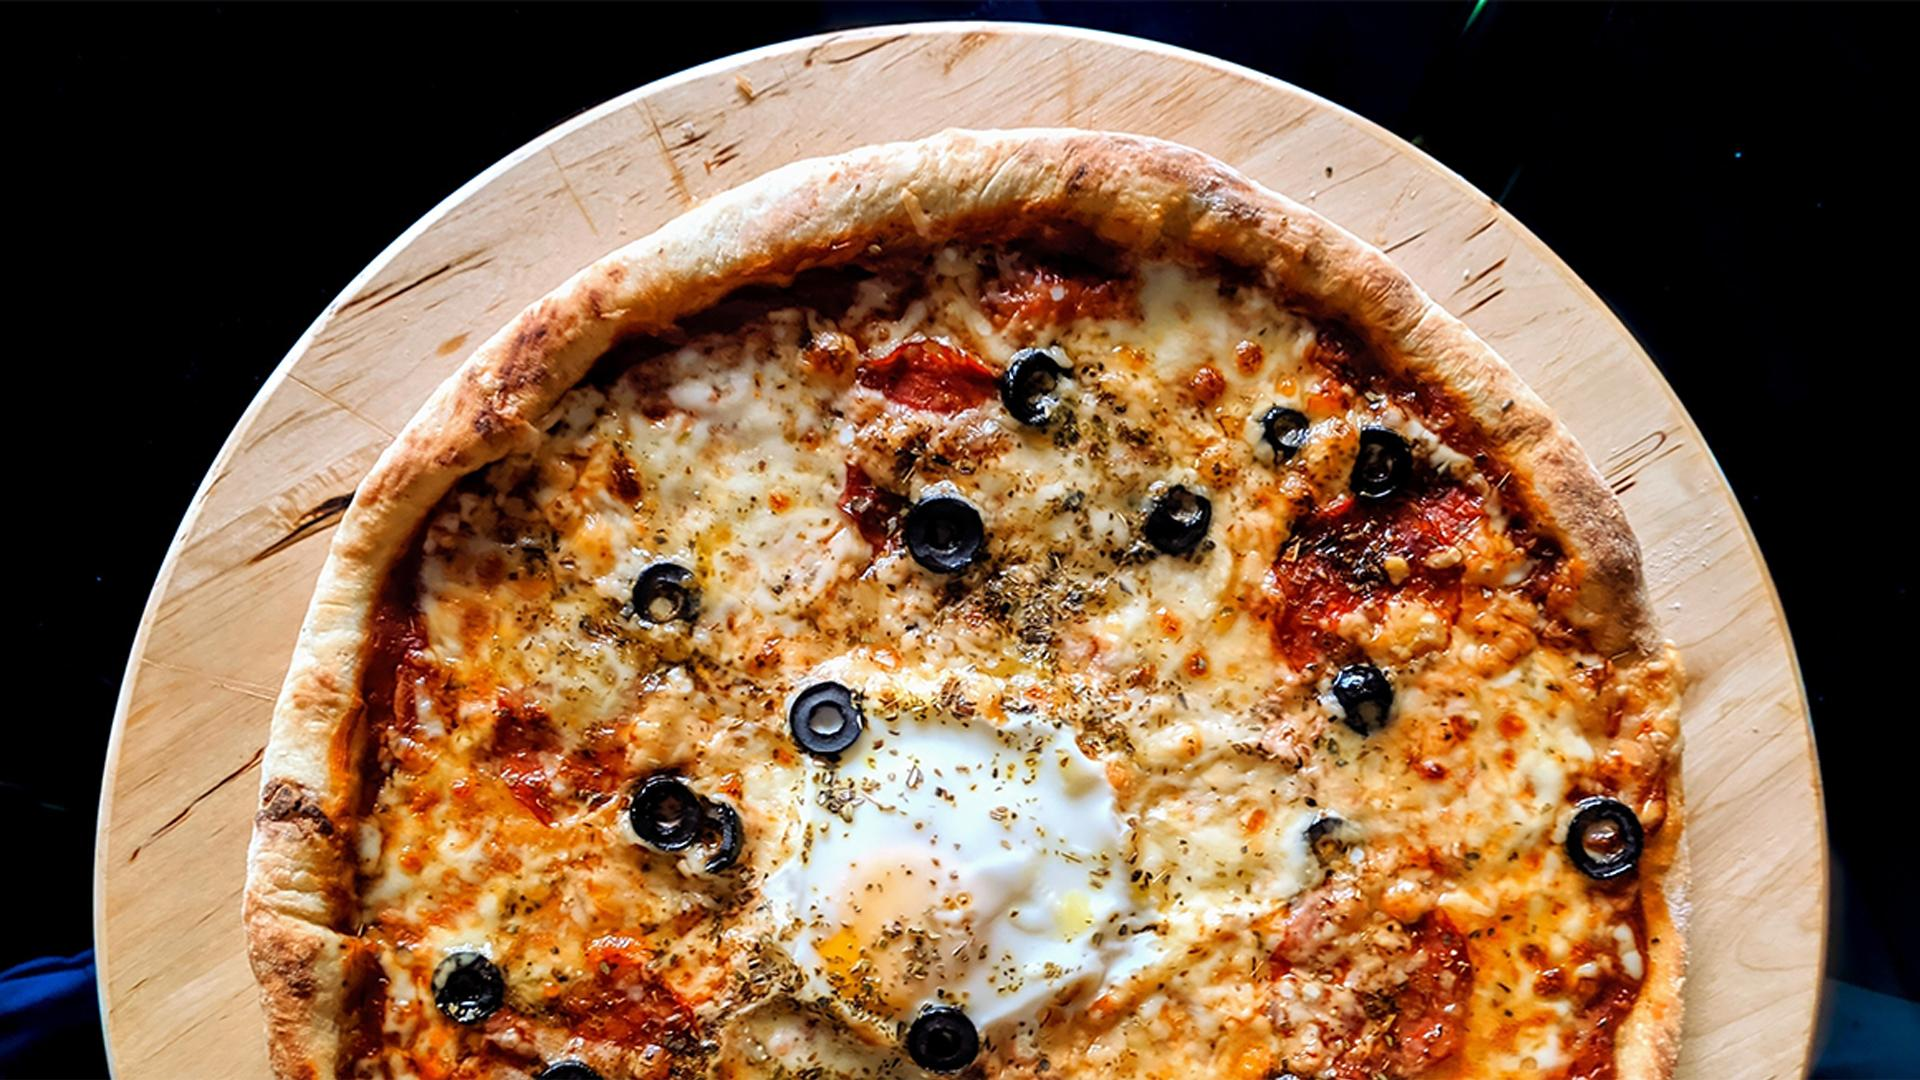 The best places to eat and drink in Windsor this fall | fresh out the oven pizza